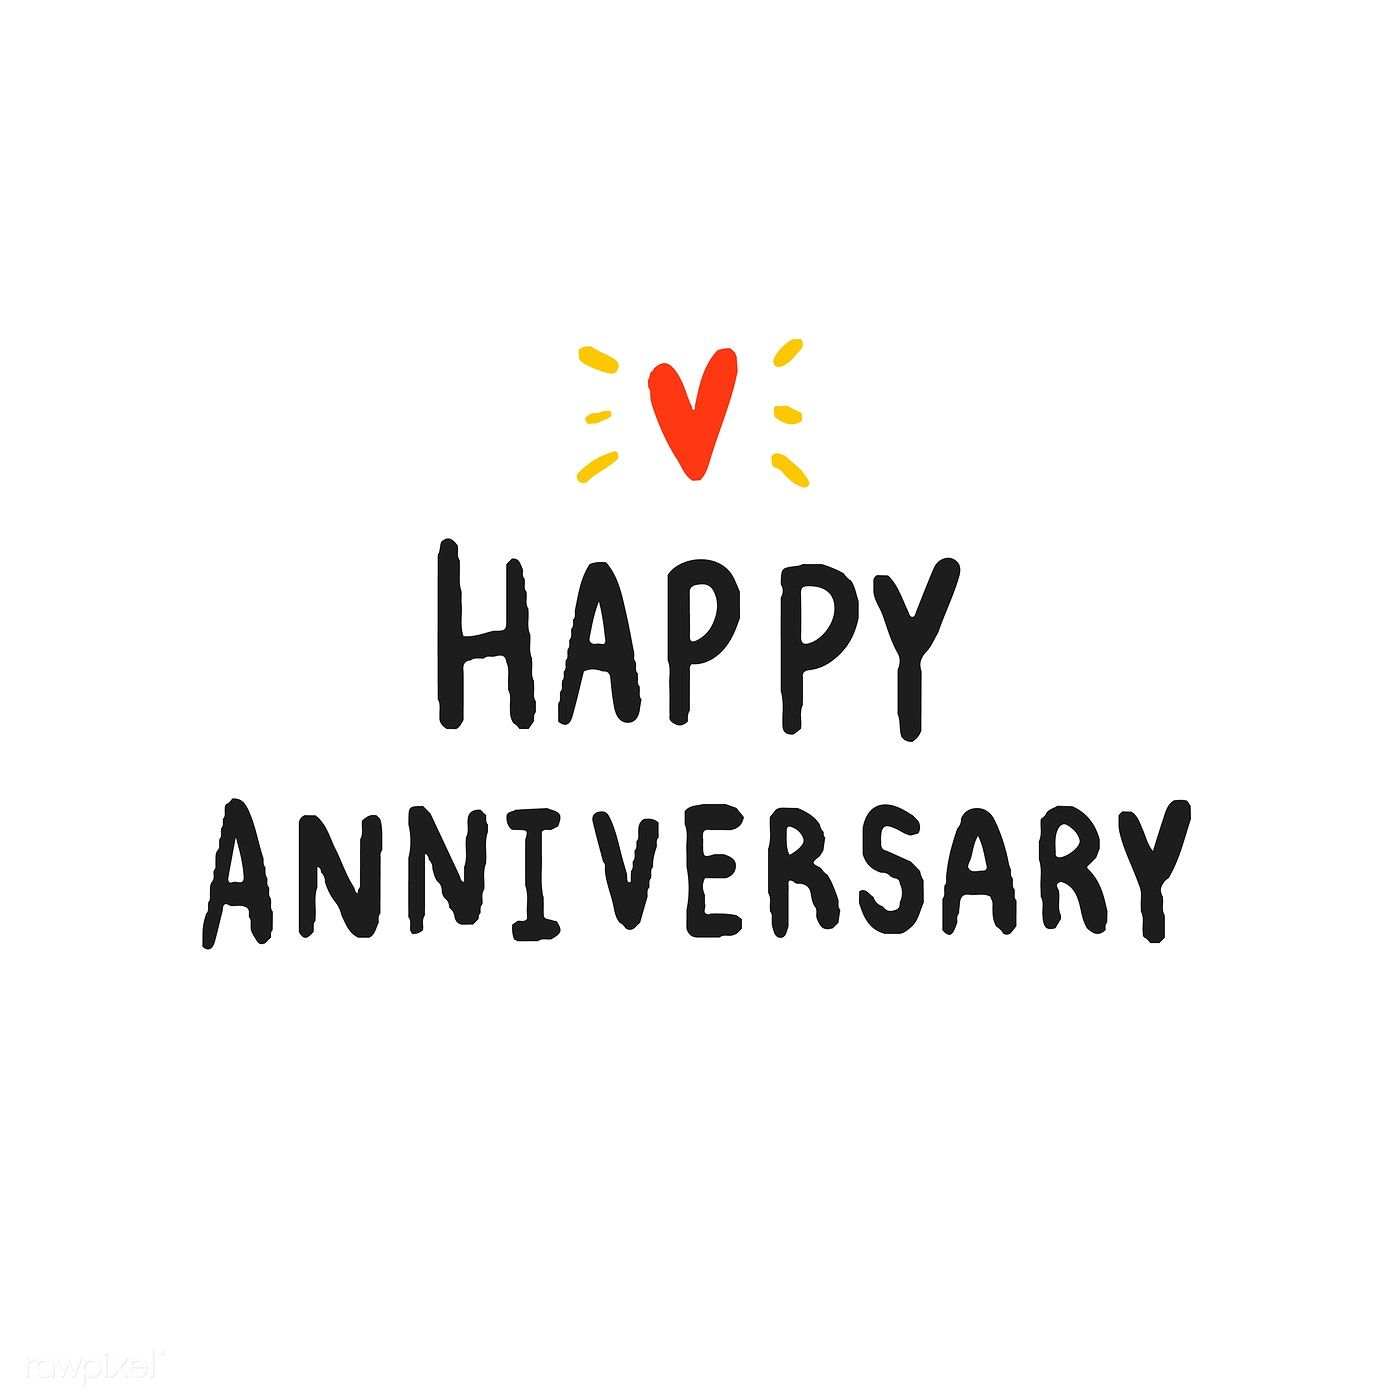 Happy Anniversary Typography In Black Free Image By Rawpixel Com